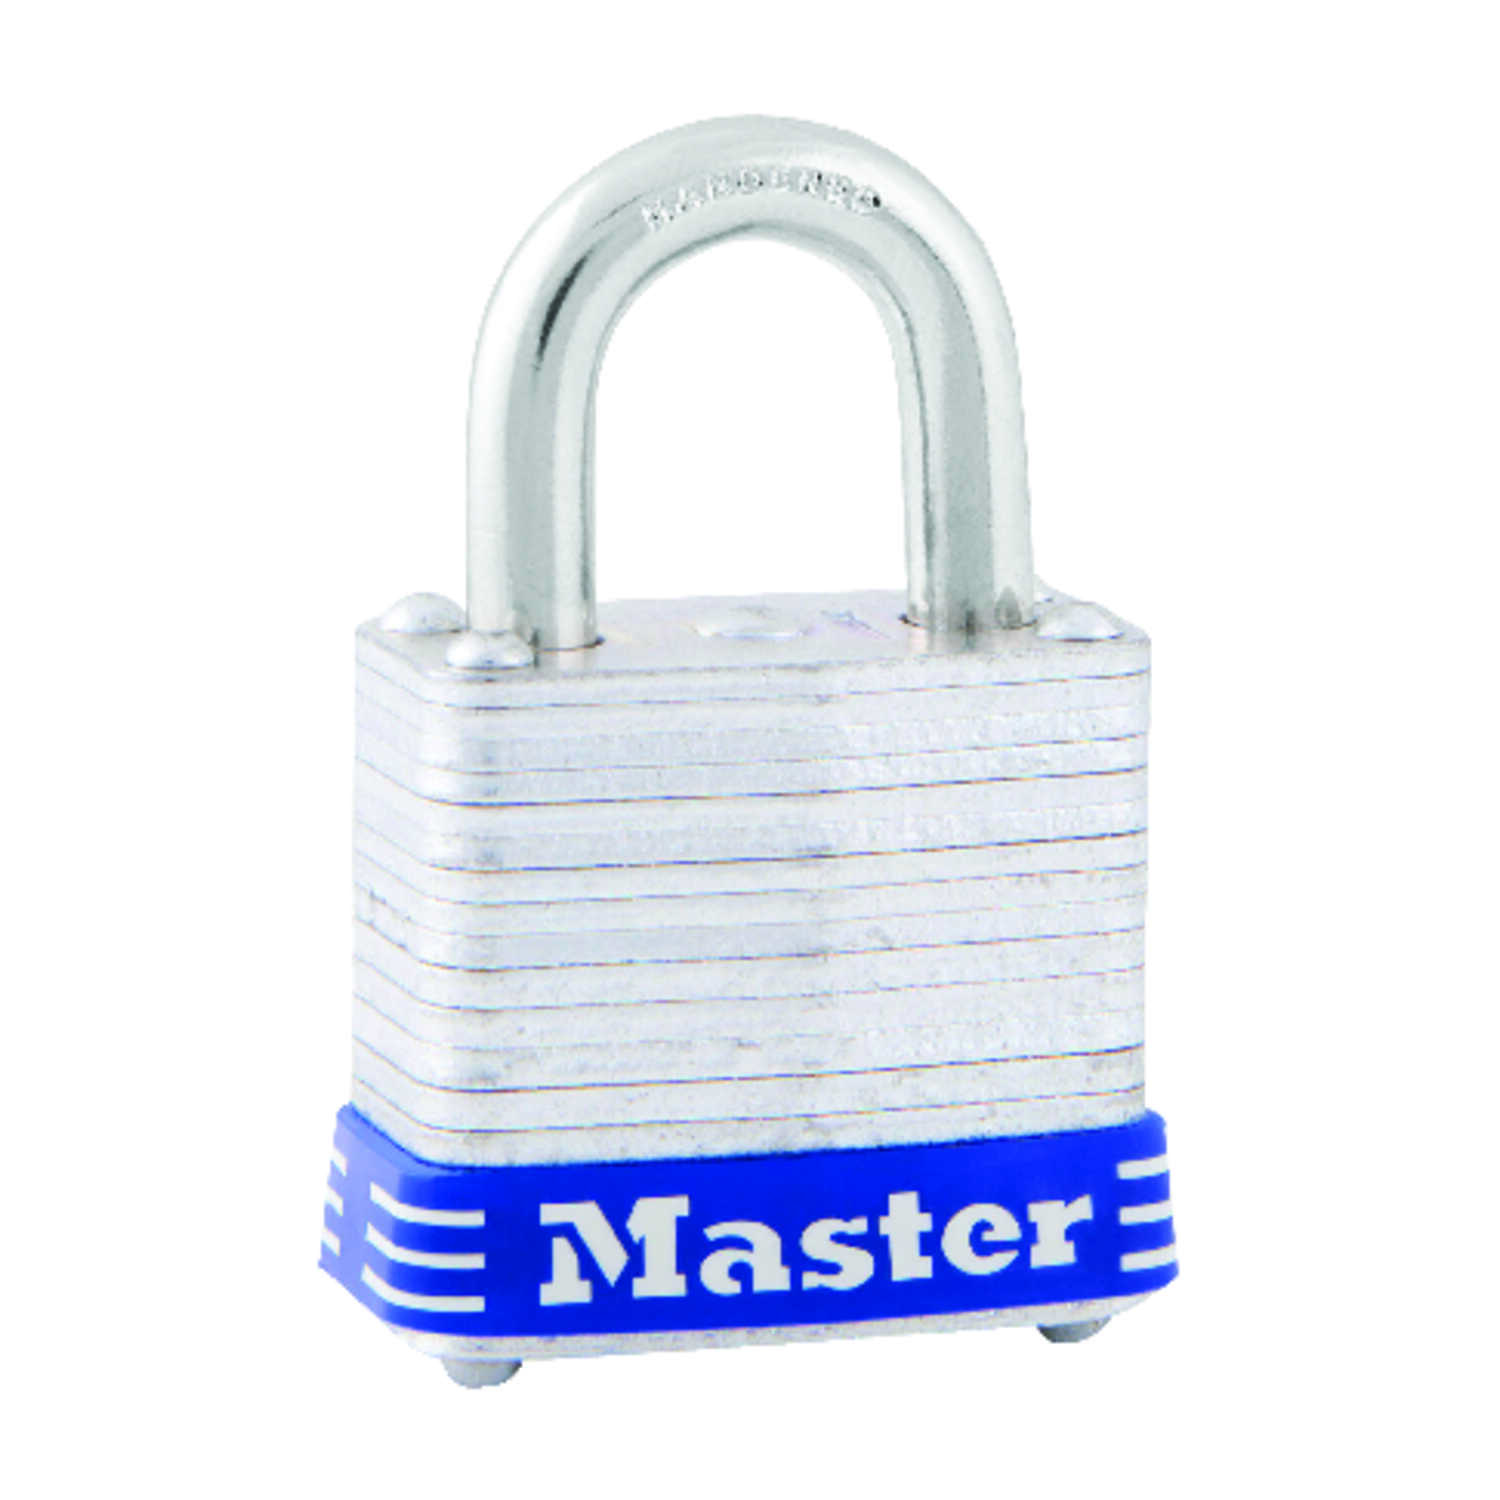 Master Lock  1 in. H x 11/16 in. W x 1-1/8 in. L Laminated Steel  4-Pin Cylinder  Padlock  1 each